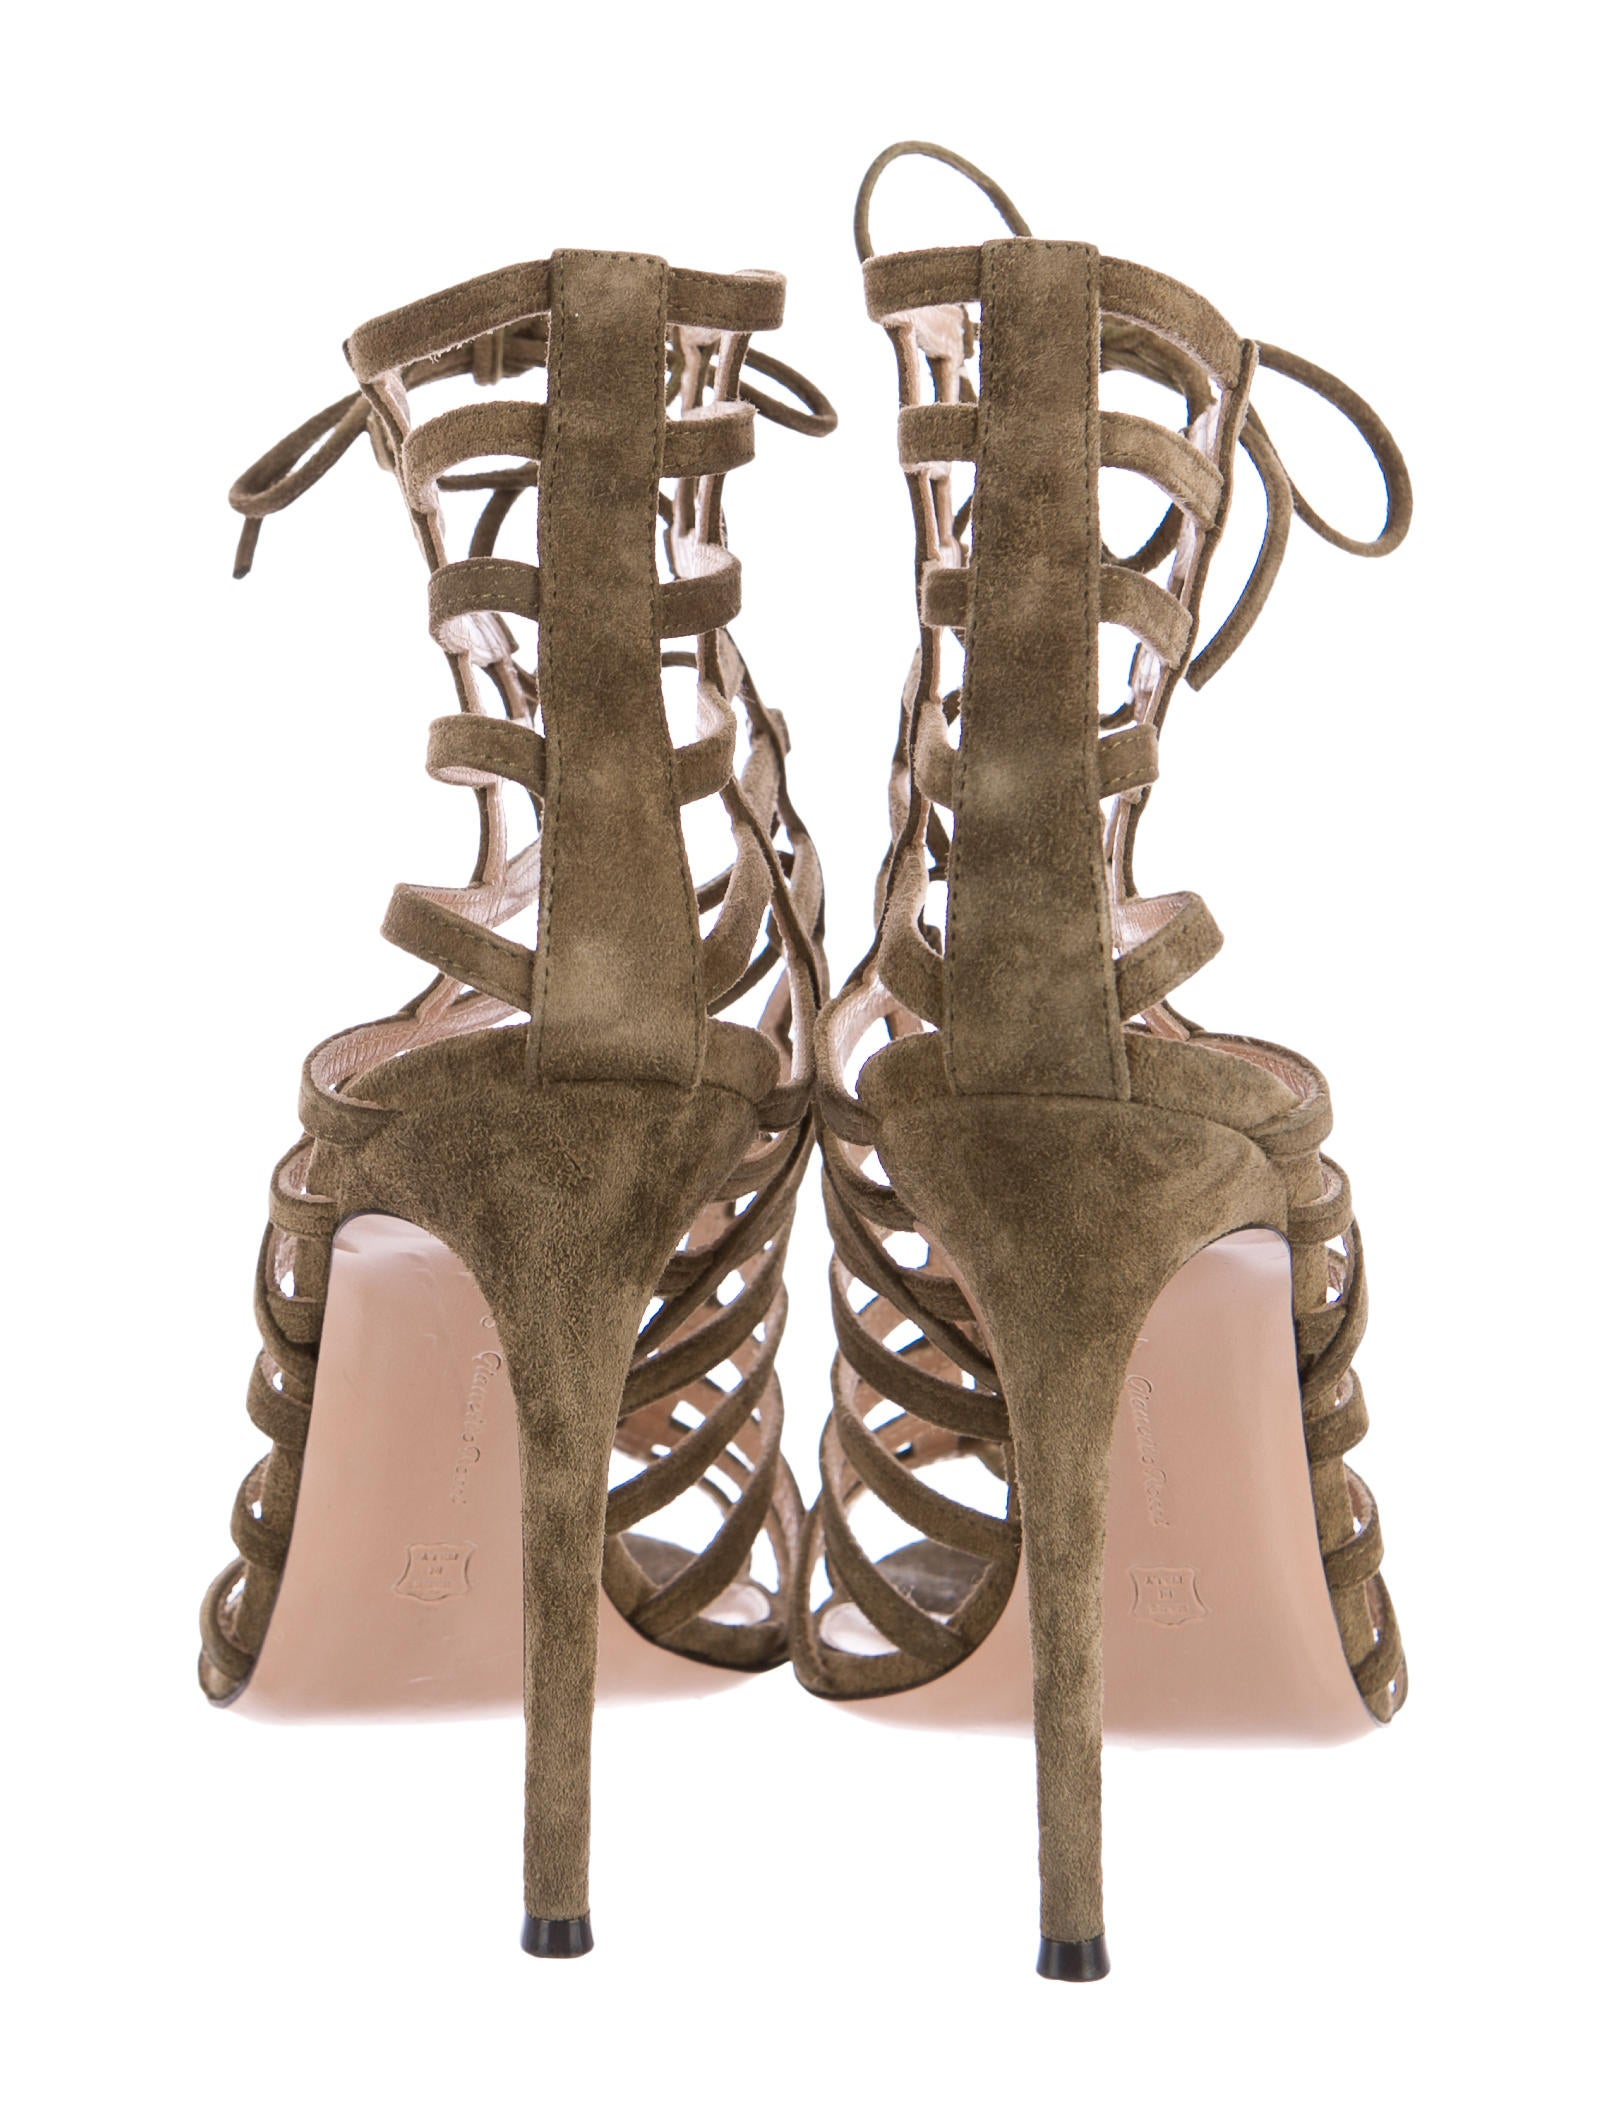 low price fee shipping cheap price Gianvito Rossi Torrie Caged Sandals clearance clearance hot sale cheap price MGl1kdKWoi